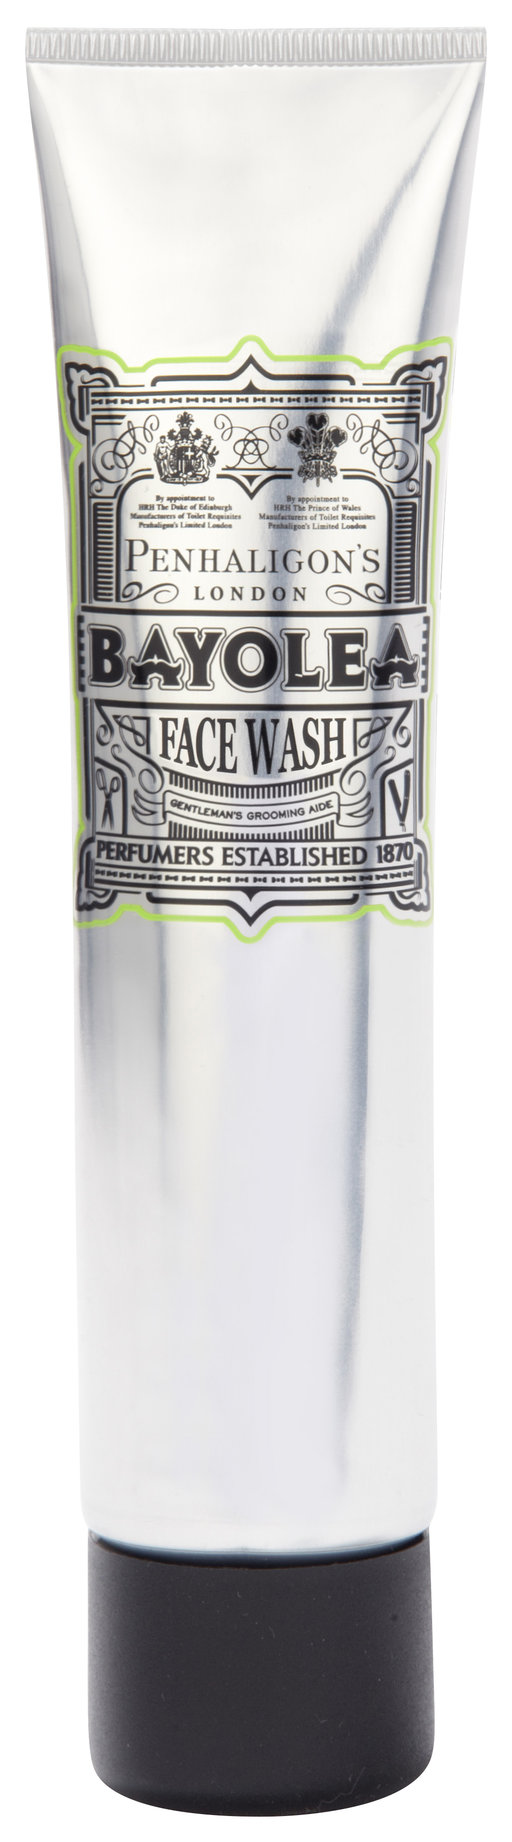 Penhaligon's Bayolea Face Wash